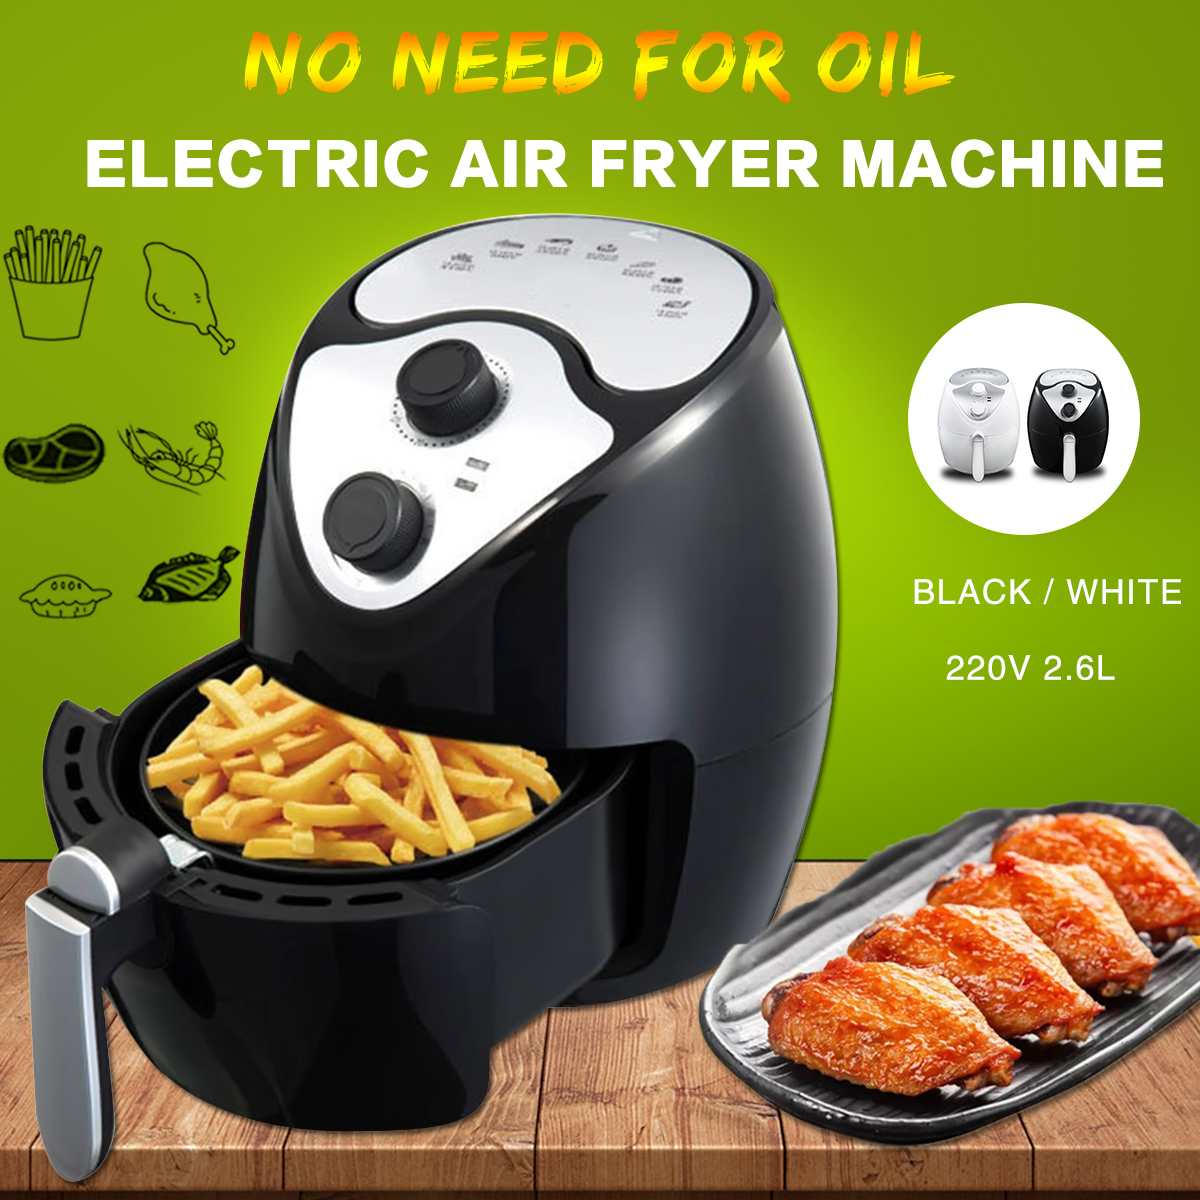 2.6L 220V 1270W Electric Deep Air Fryer Machine Household Intelligent Smokeless No Oil Fries Barbecue Health Cooker Machine Tool